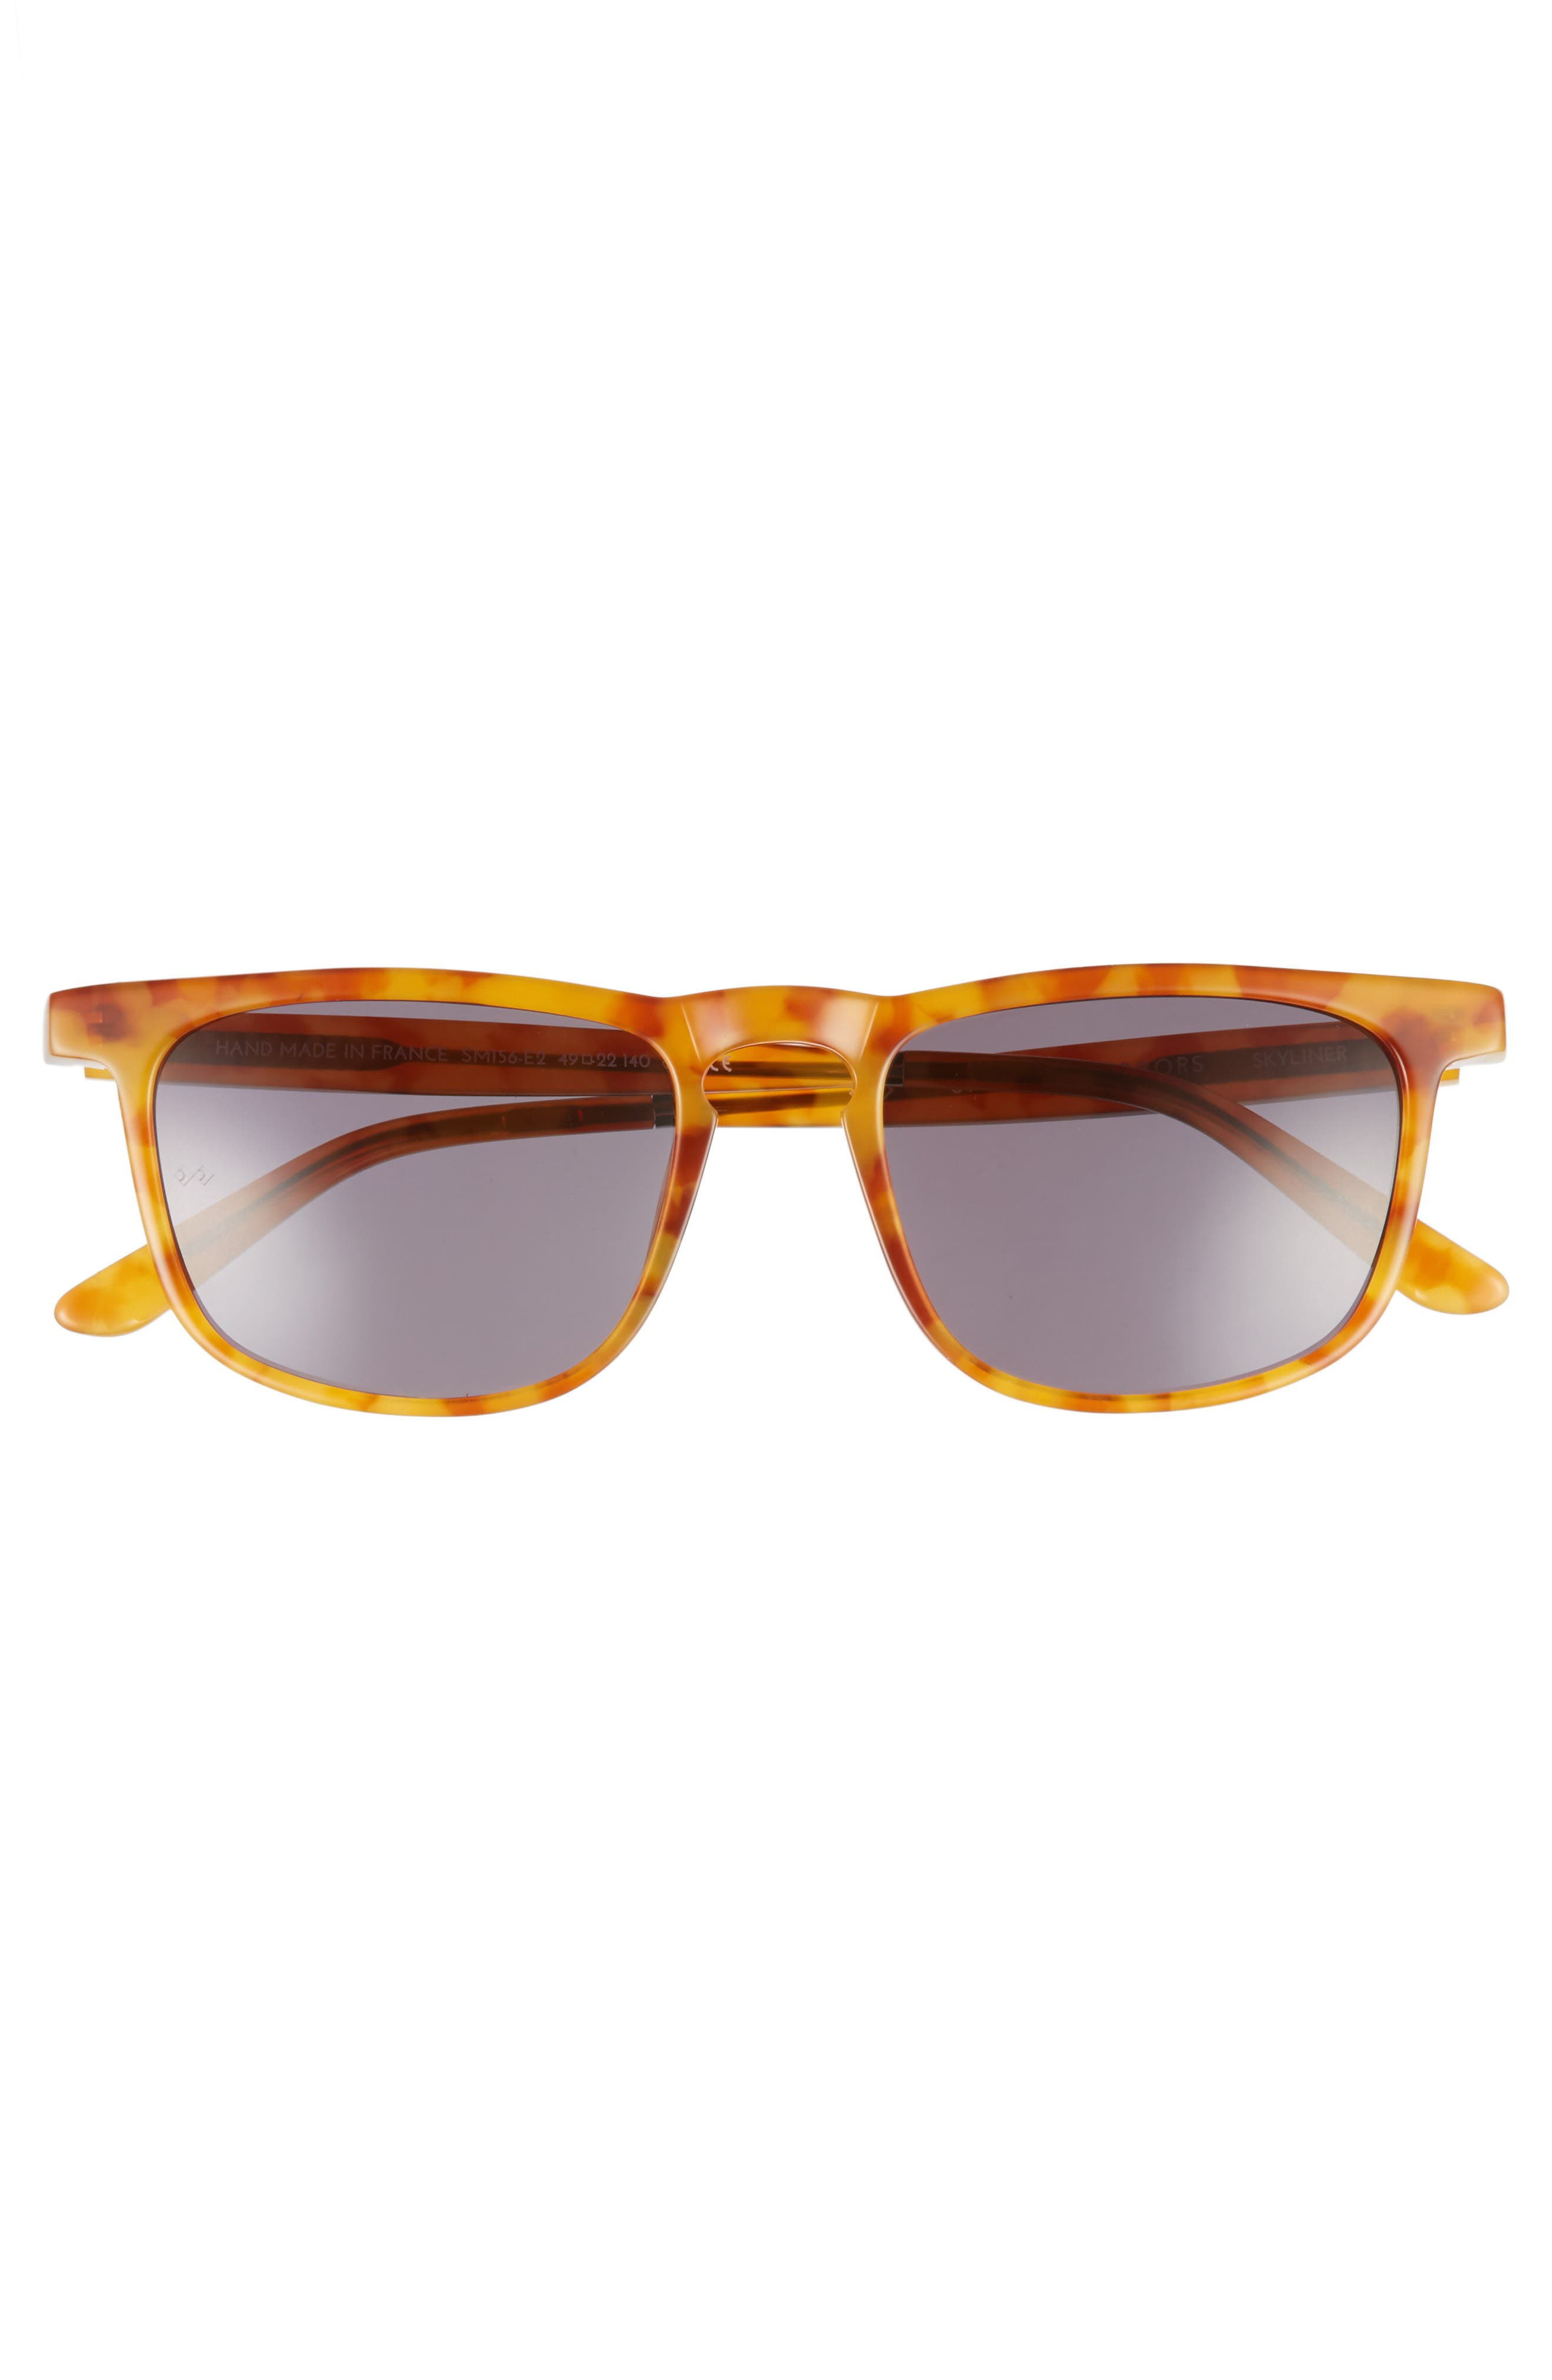 Skyliner 49mm Sunglasses,                             Alternate thumbnail 2, color,